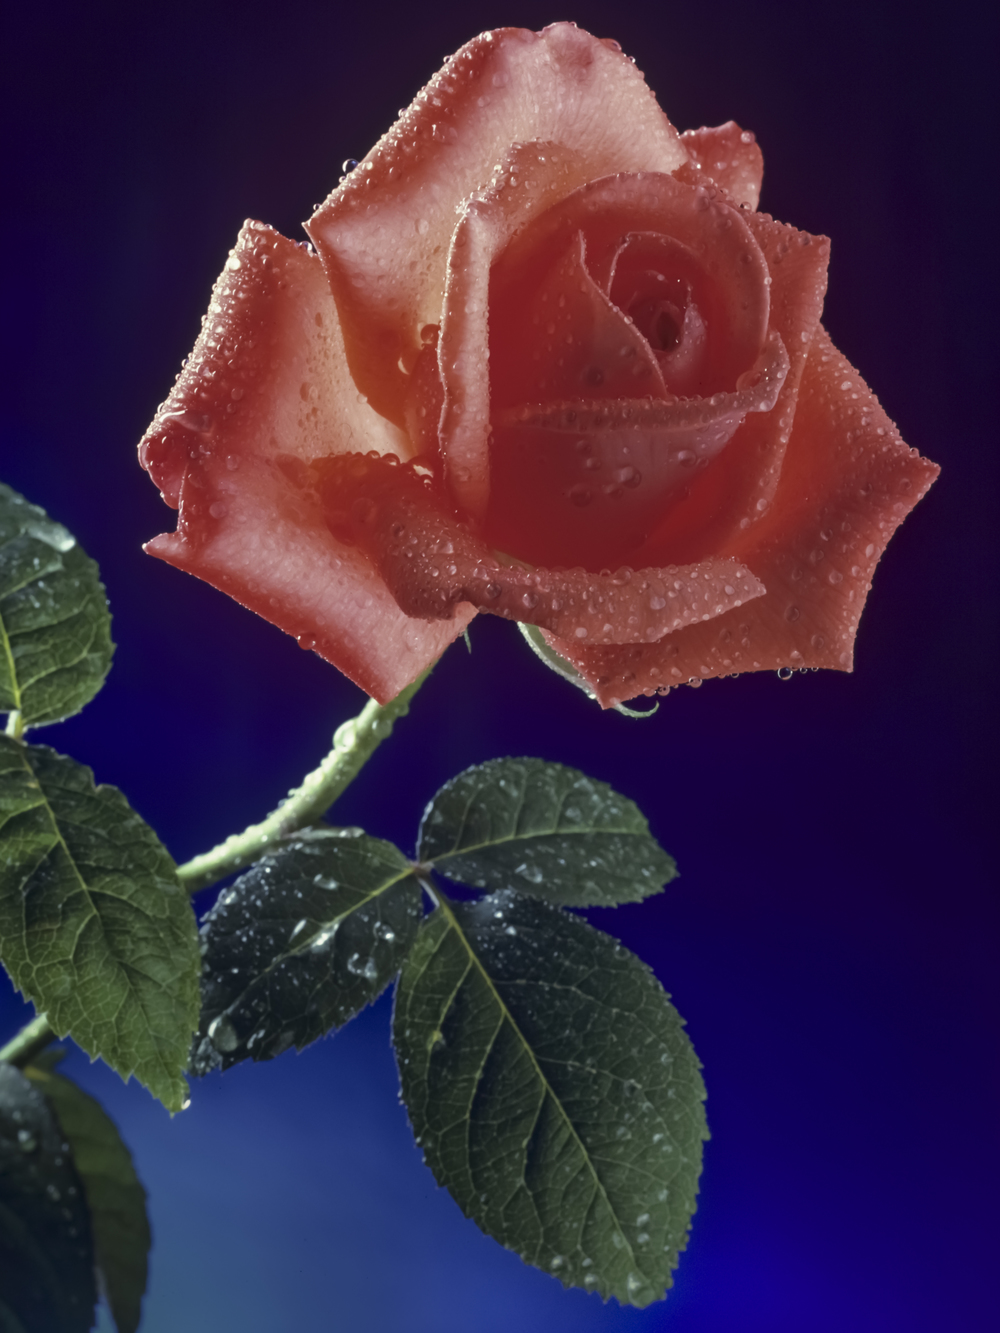 The Rose, studio promotional Copyright © Kipp Baker, All rights reserved